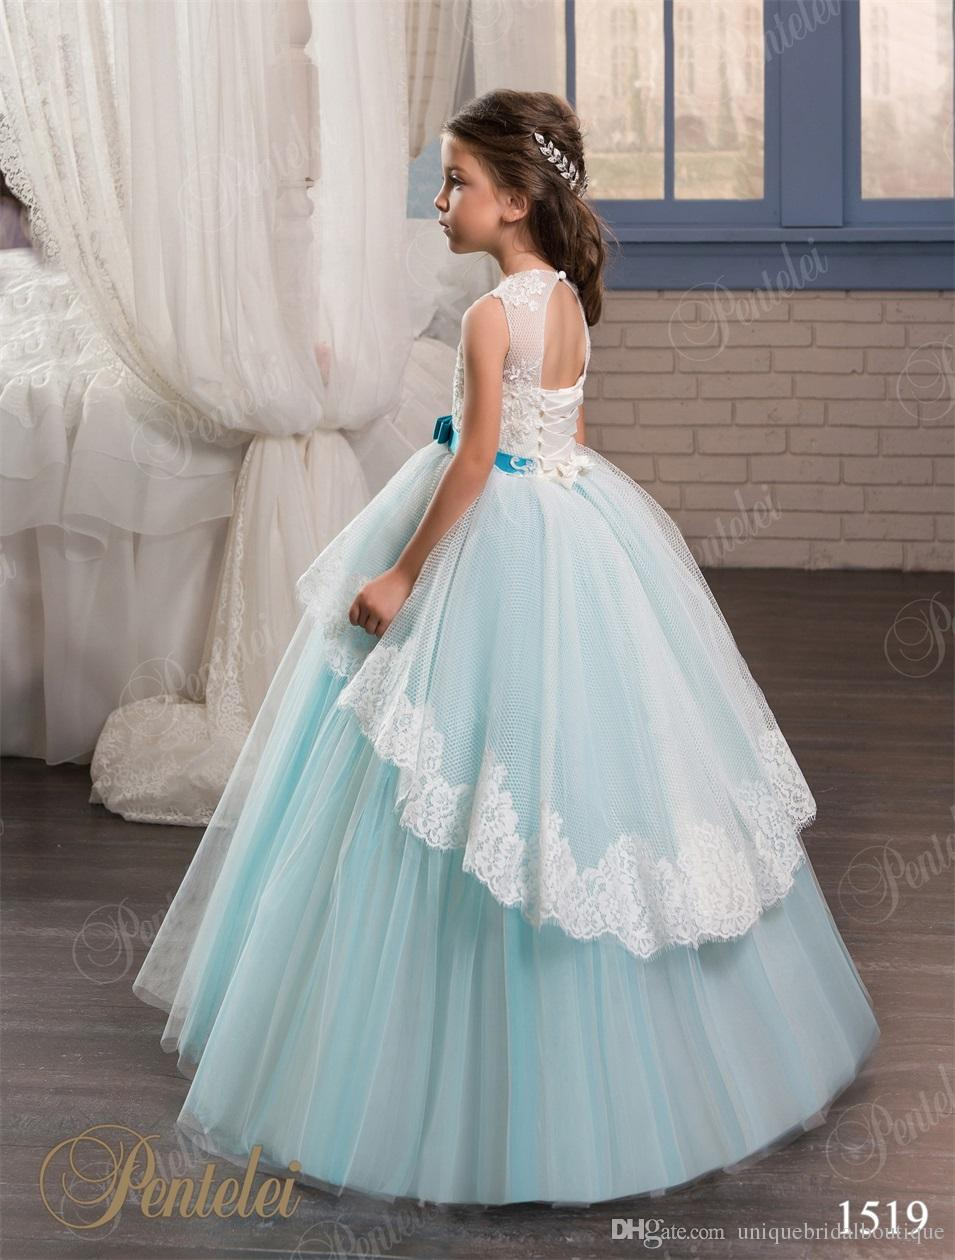 Girls Wedding Dresses 2021 Pentelei with Lace Up Back and Bow Sash Appliques Tulle Sky Blue Flower Girls Gowns for Weddings